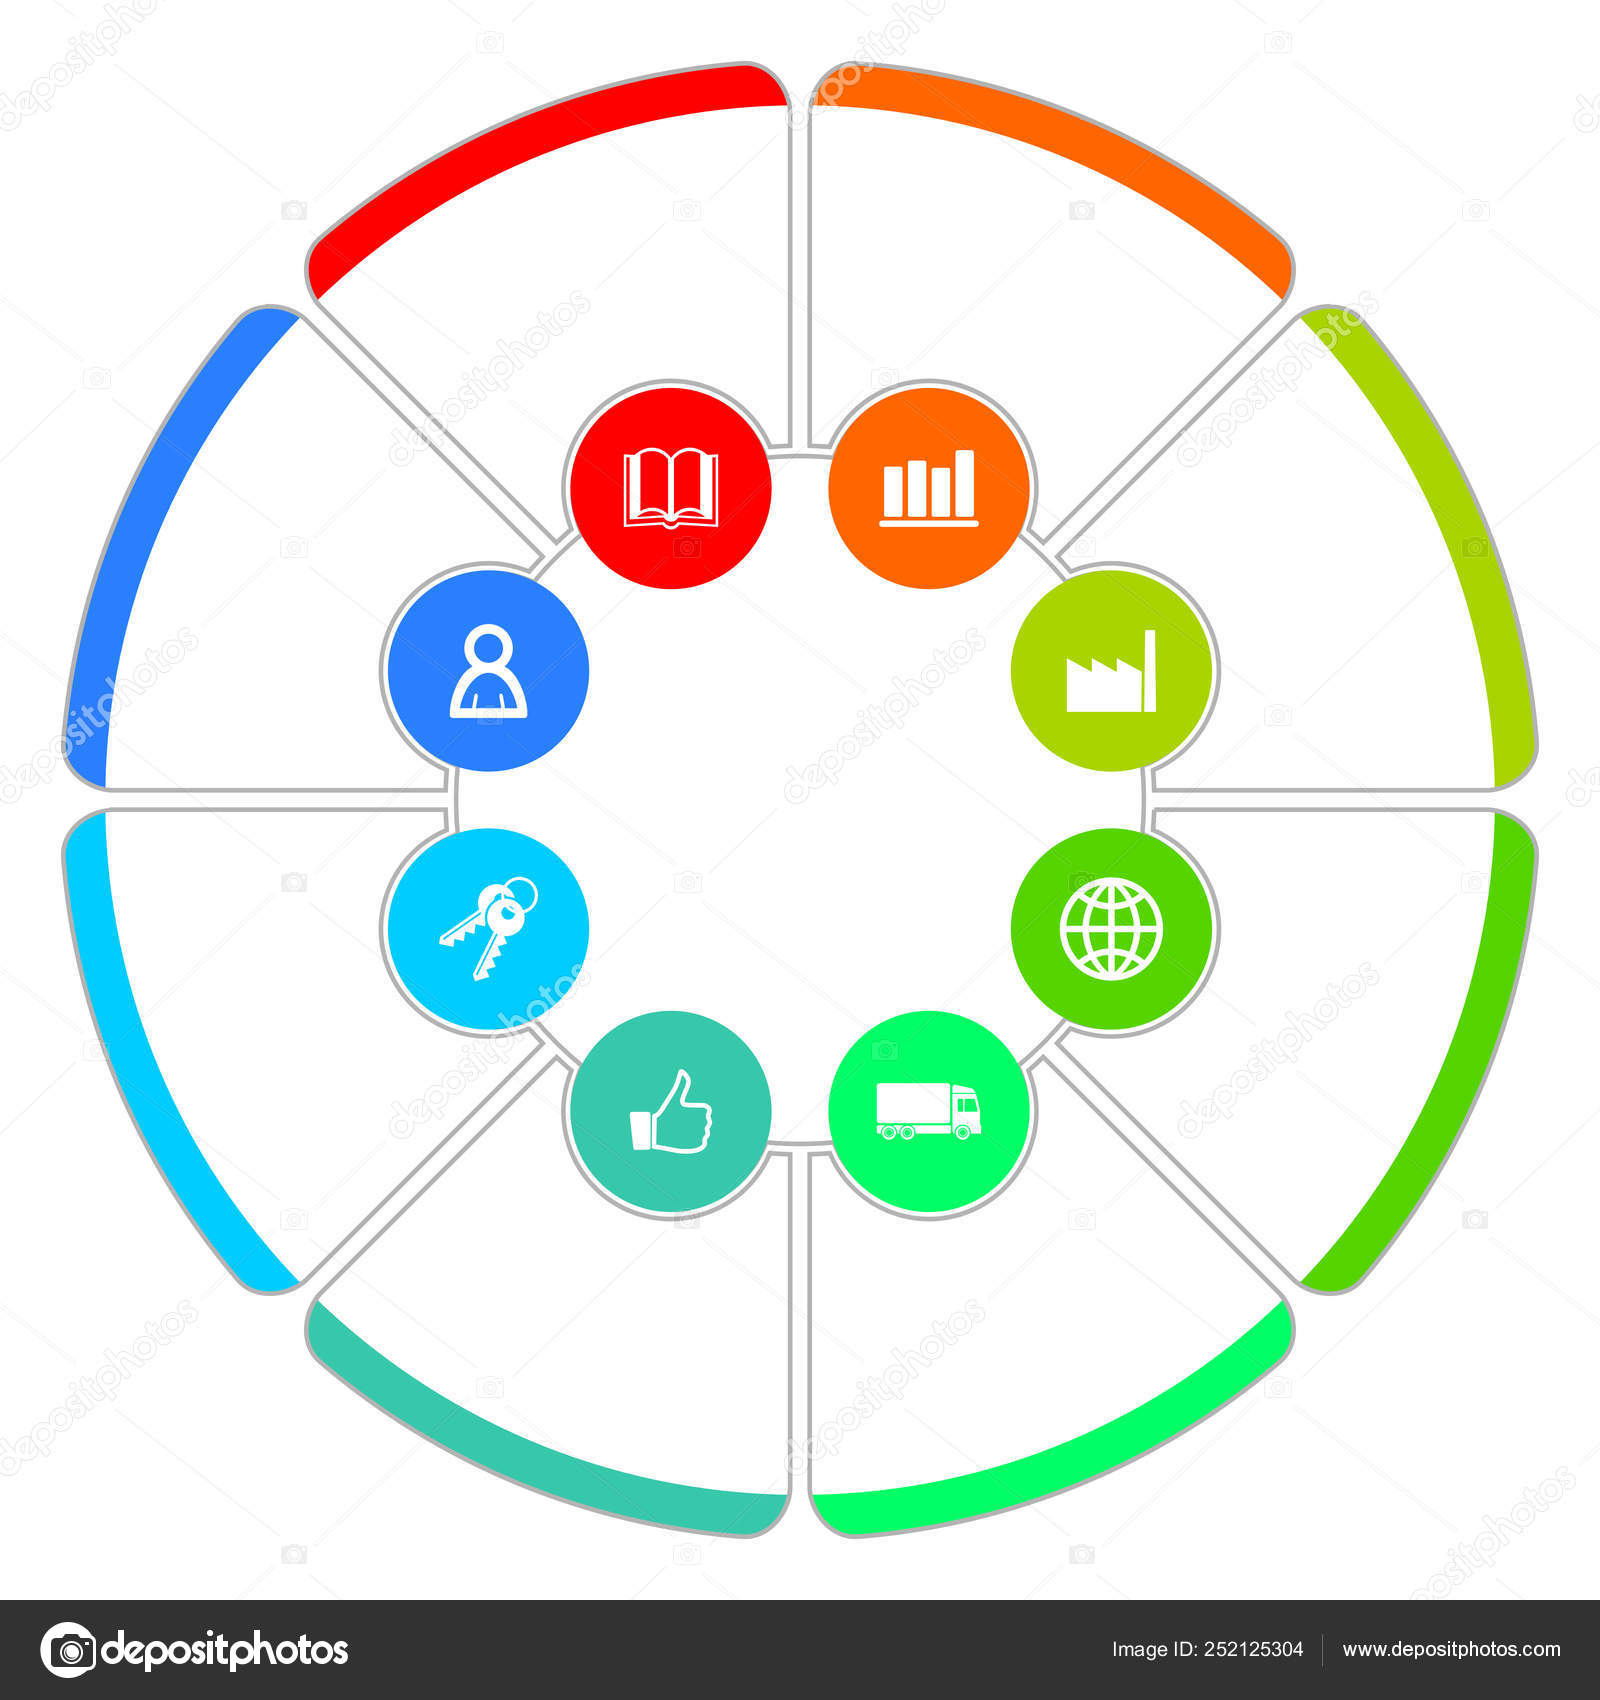 Simple editable infographic vector template for business